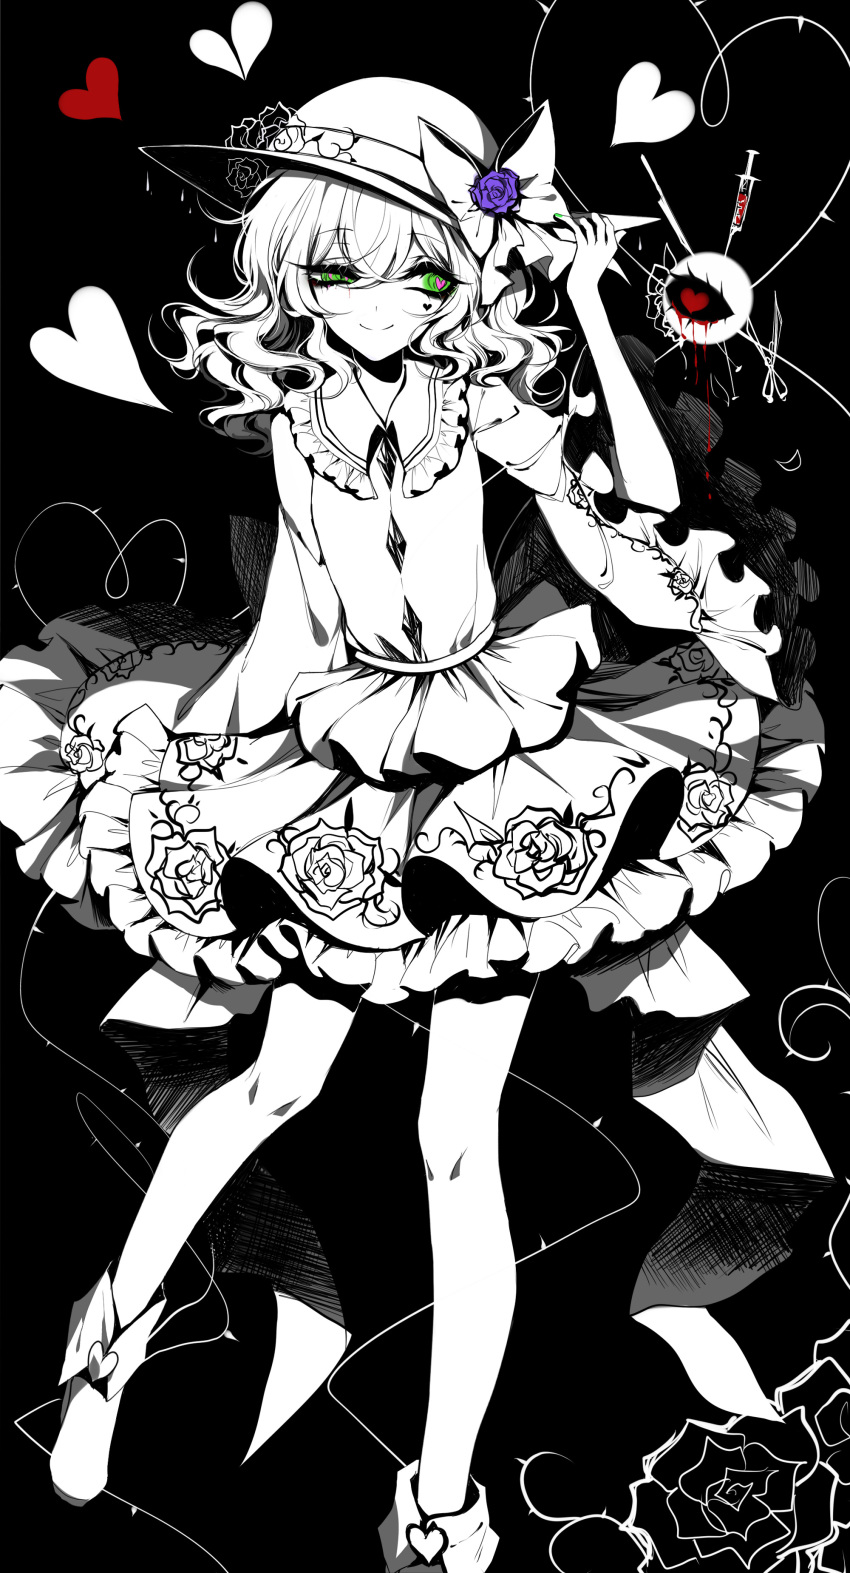 1girl absurdres black_background blood blue_flower blue_rose boots bow eyebrows_visible_through_hair floral_print flower frilled_shirt_collar frills hair_between_eyes hand_on_headwear hat hat_bow hat_flower hat_rose heart heart-shaped_pupils heart_of_string highres komeiji_koishi limited_palette long_sleeves looking_to_the_side medium_hair petticoat rose scalpel sheya shirt simple_background skirt smile solo spot_color symbol-shaped_pupils syringe third_eye thorns touhou uneven_eyes wide_sleeves